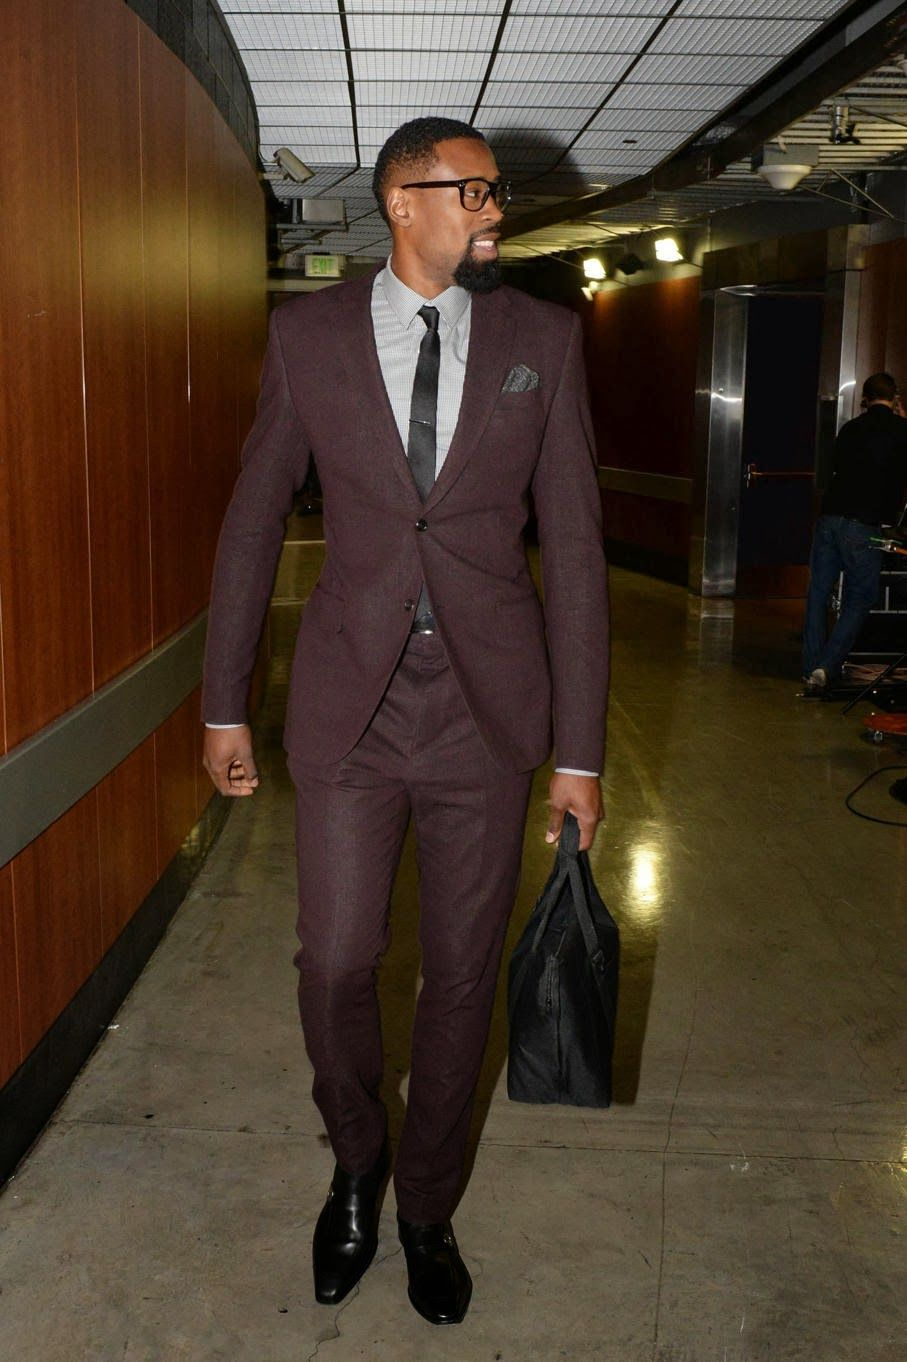 Burgundy | Bespoke | Pinterest | Nba players, Suits and Fitted suits